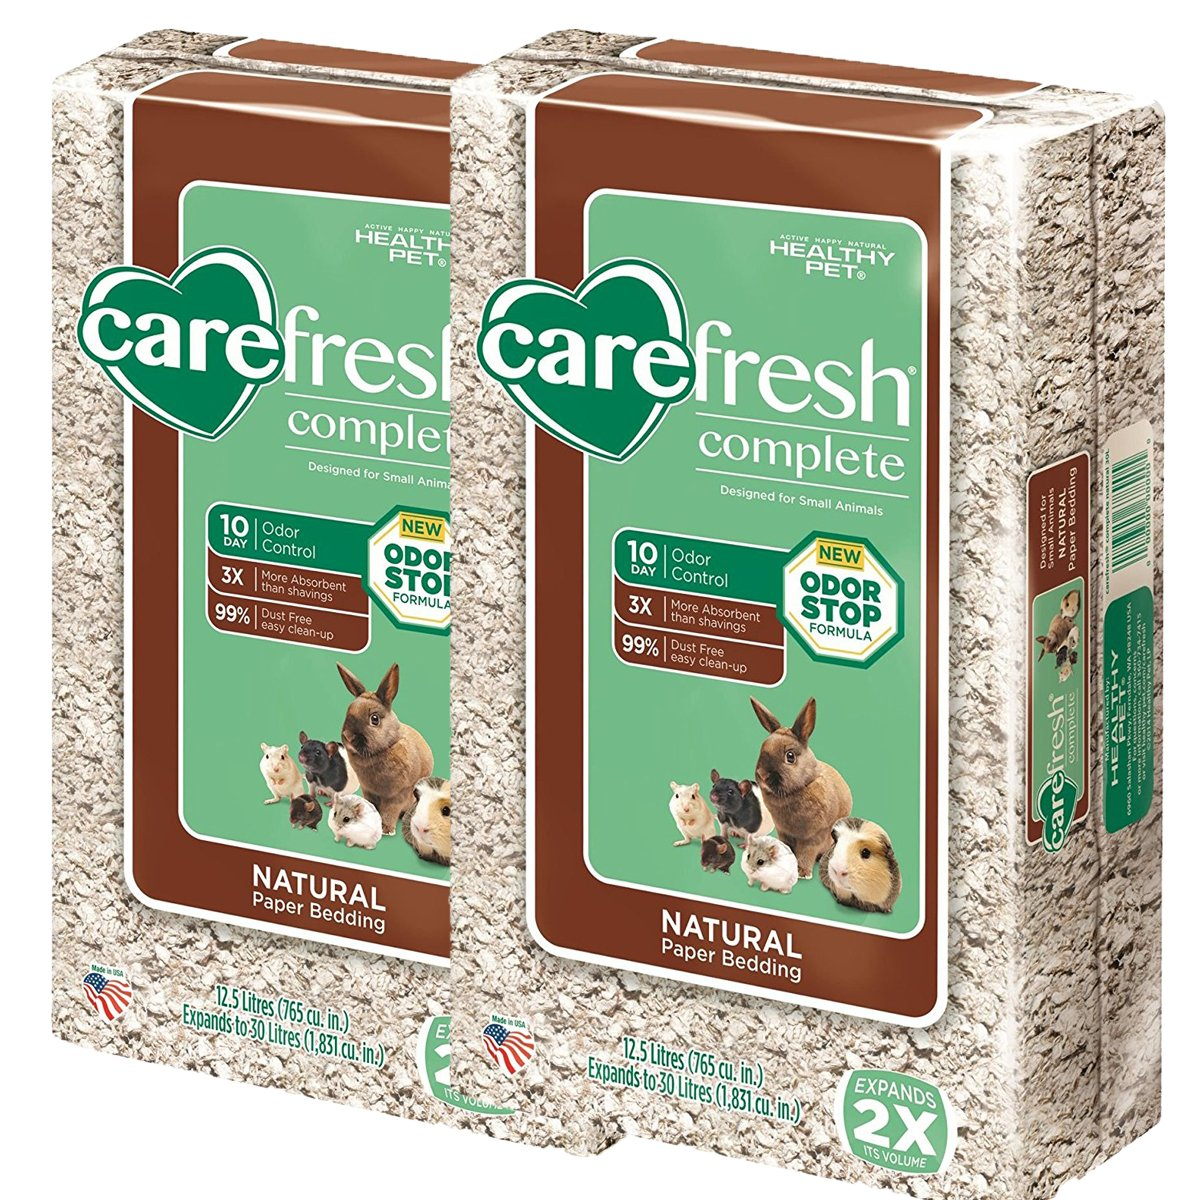 Carefresh Complete Natural Pet Bedding 12.5L 2-Pack by Carefresh